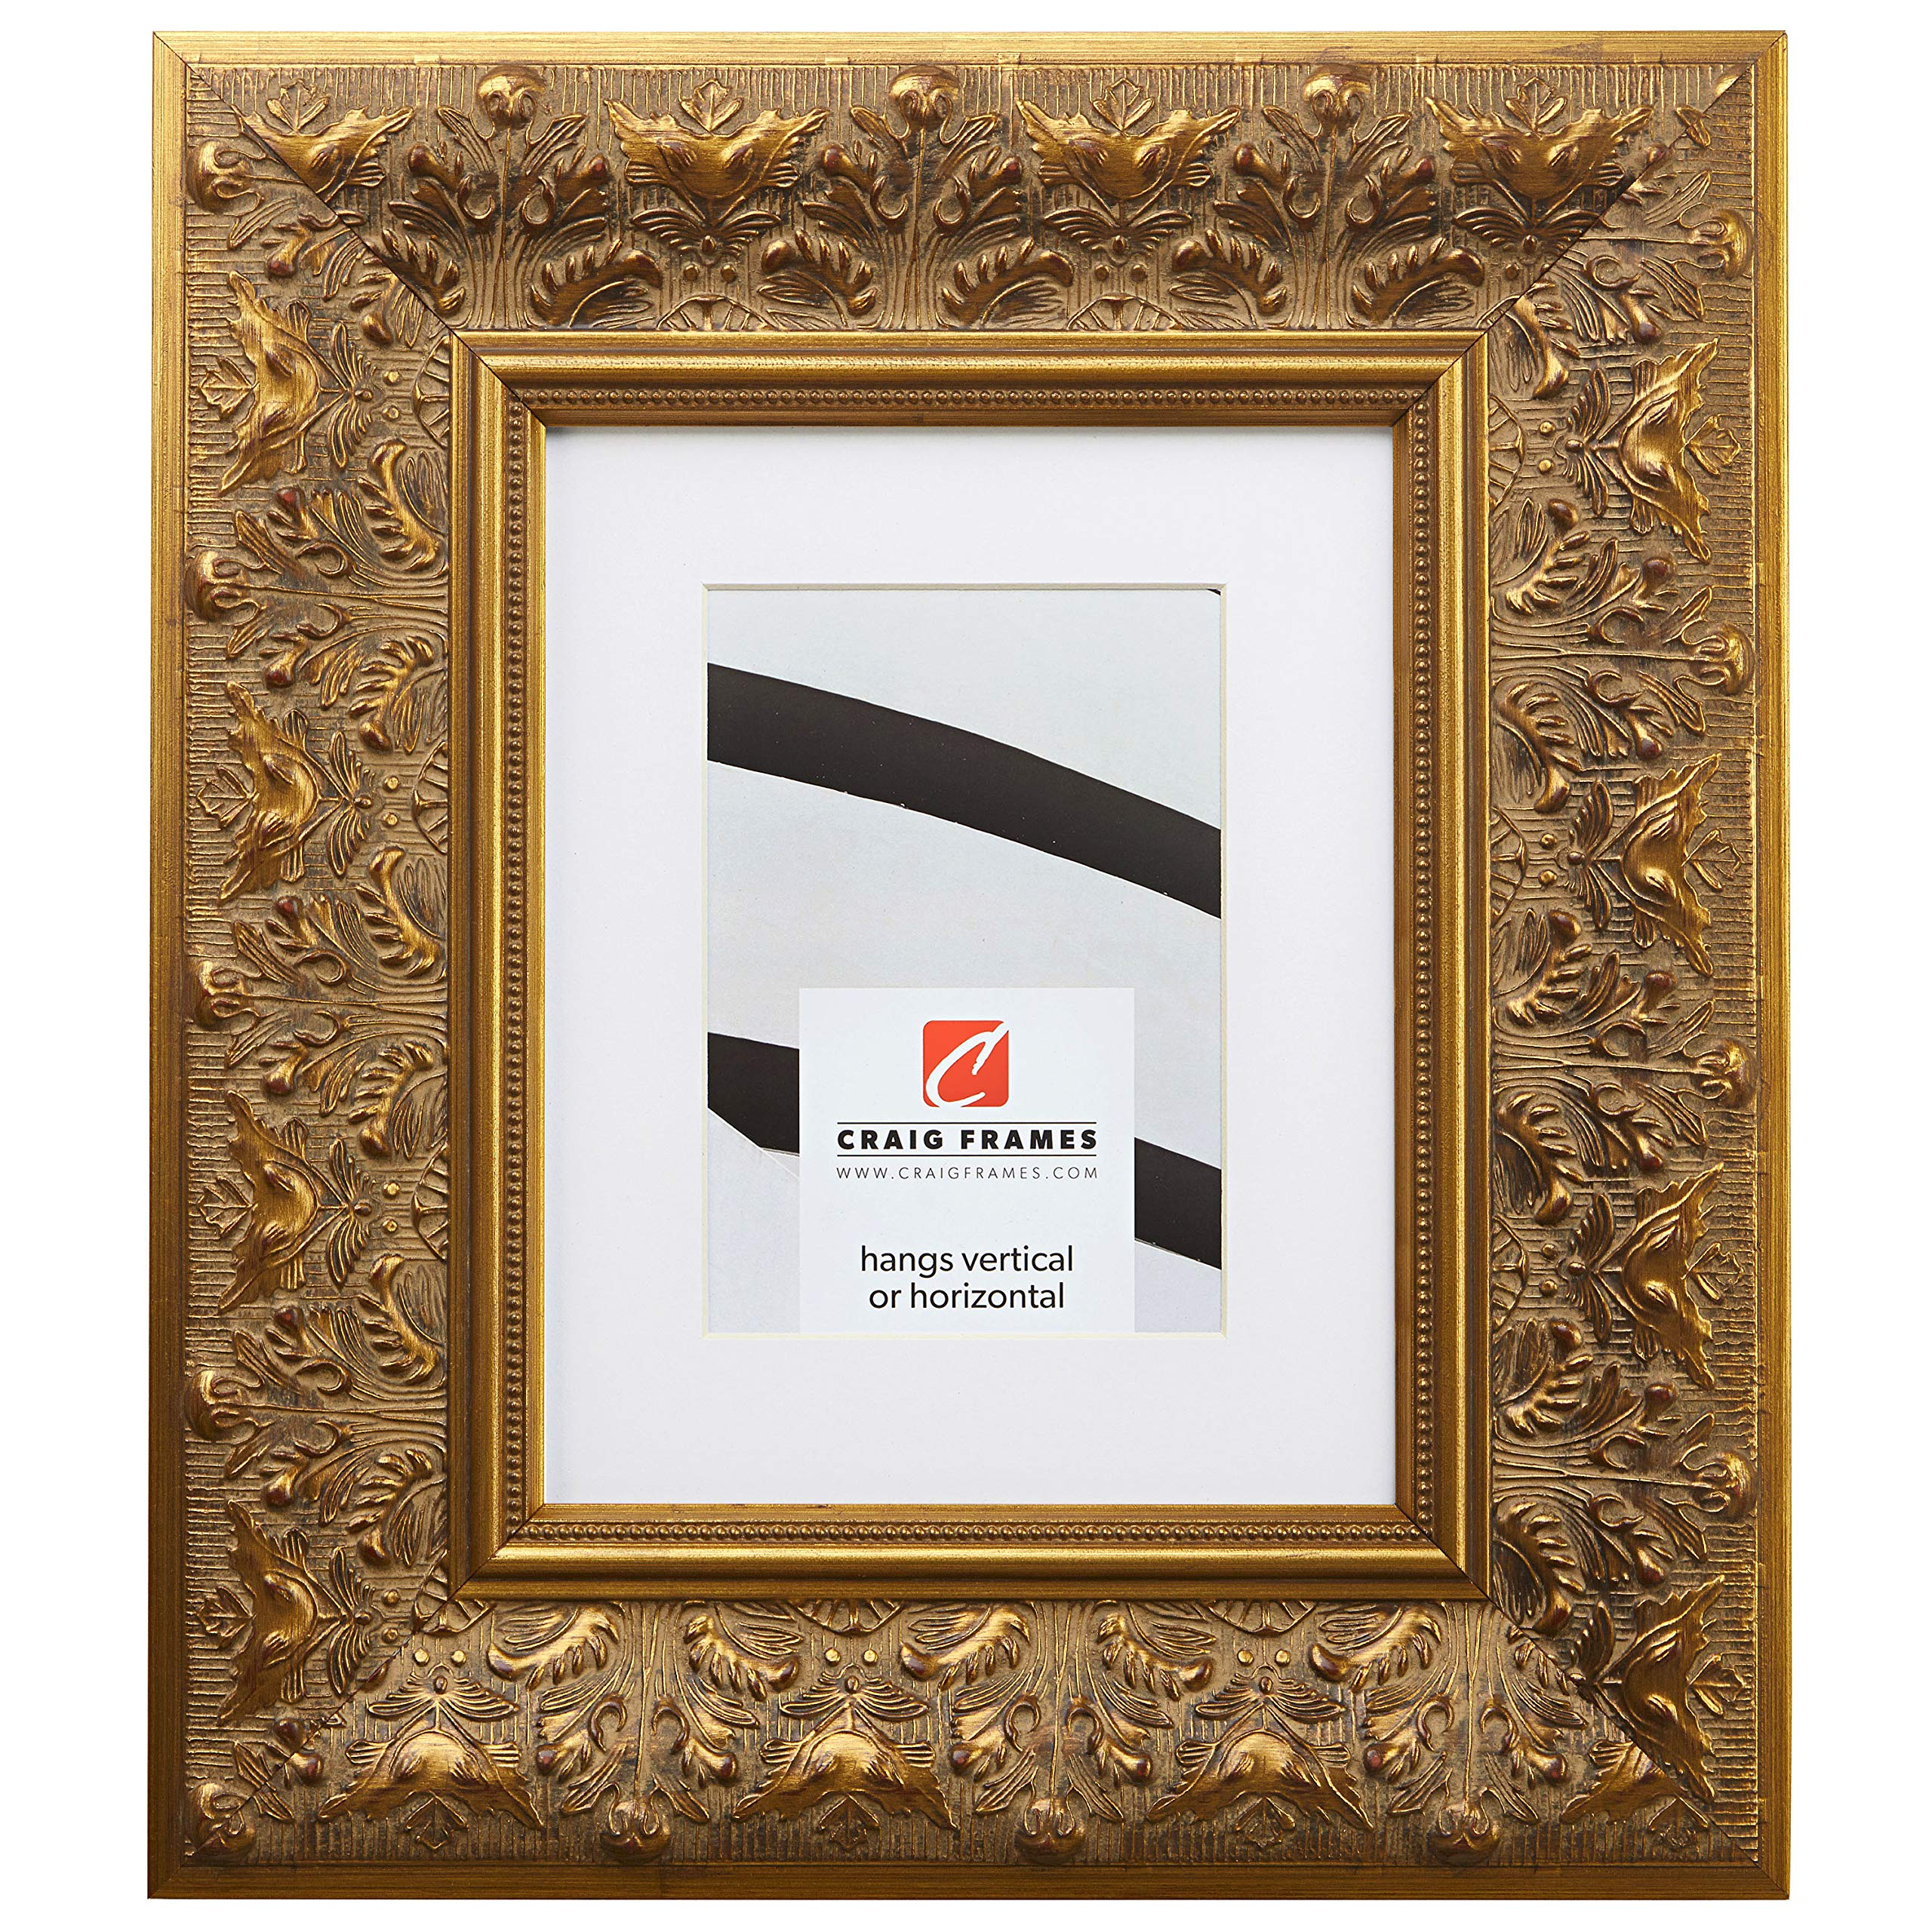 Craig Frames Borromini, 16 x 20 Inch Gold and Bronze Picture Frame Matted to Display a 11 x 14 Inch Photo by Craig Frames